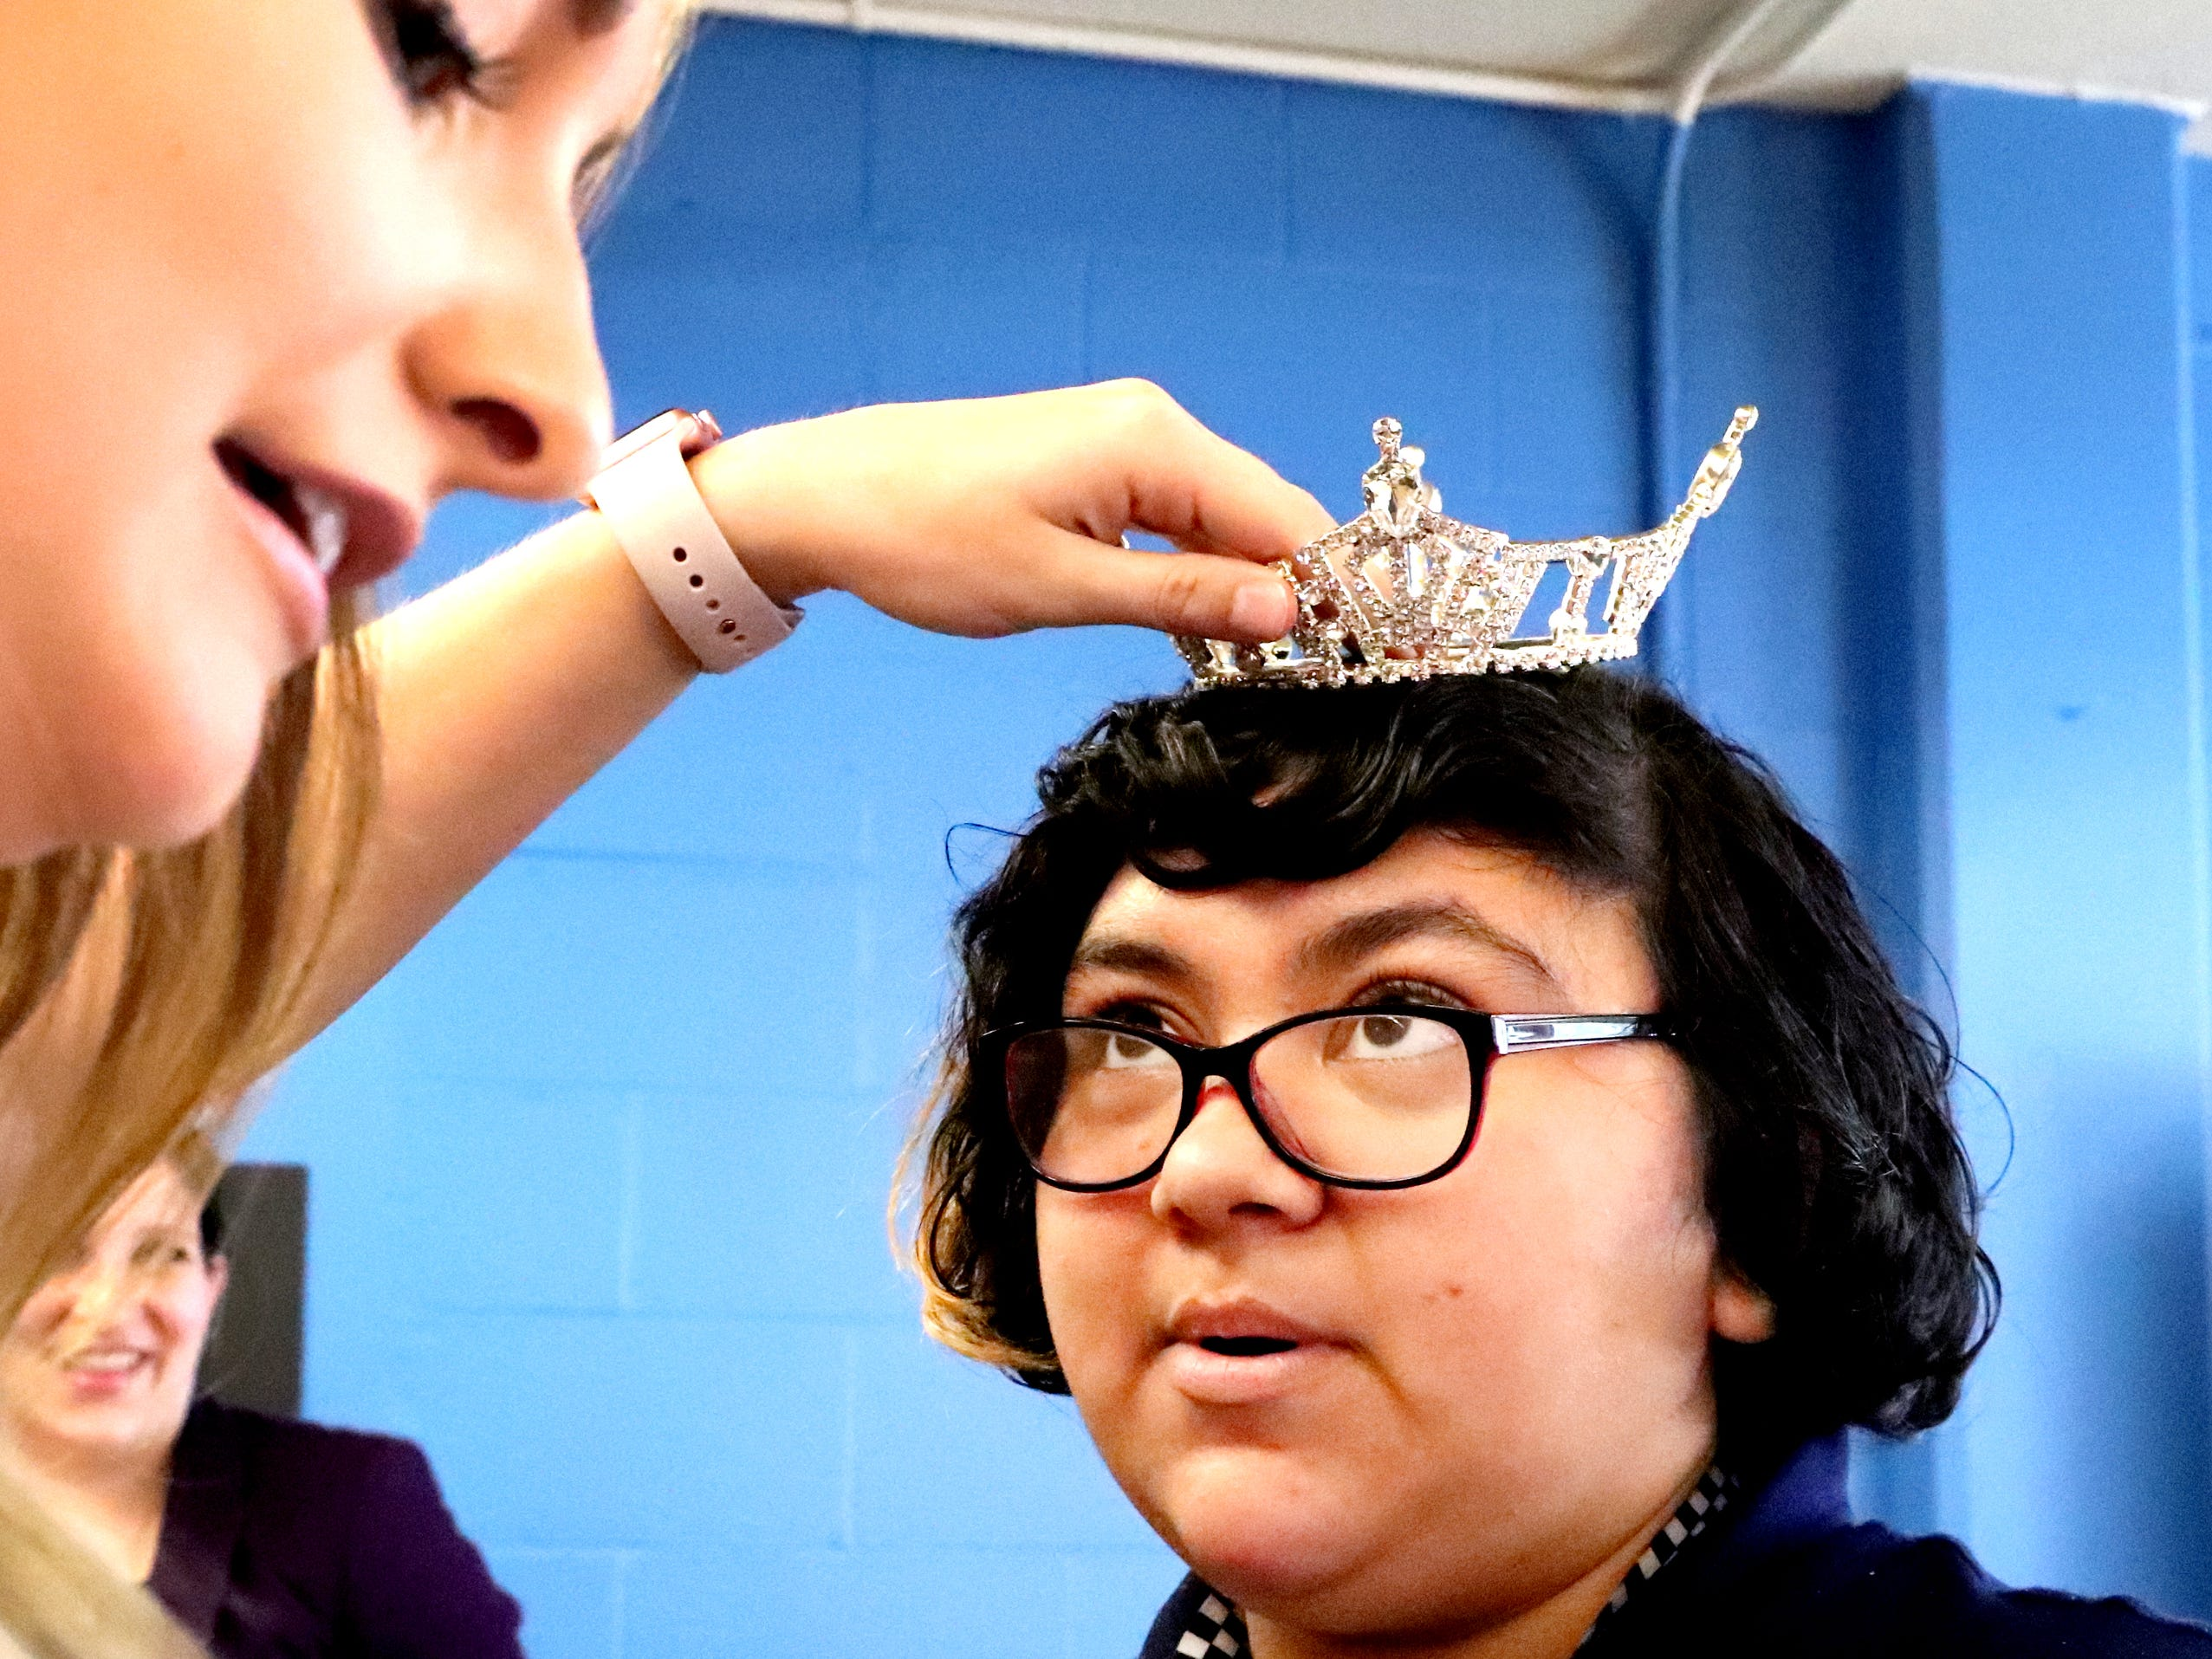 Miss Williamson County 2019 Savannah Rogers puts her crown Mariah M. Hulse, on one of the students in the Certified Pharmacy Technician program at the Tennessee Rehabilitation Center, during a CVS/TRC-Smyrna Mock Store Grand Opening Ceremony on Wednesday, May 8, 2019.